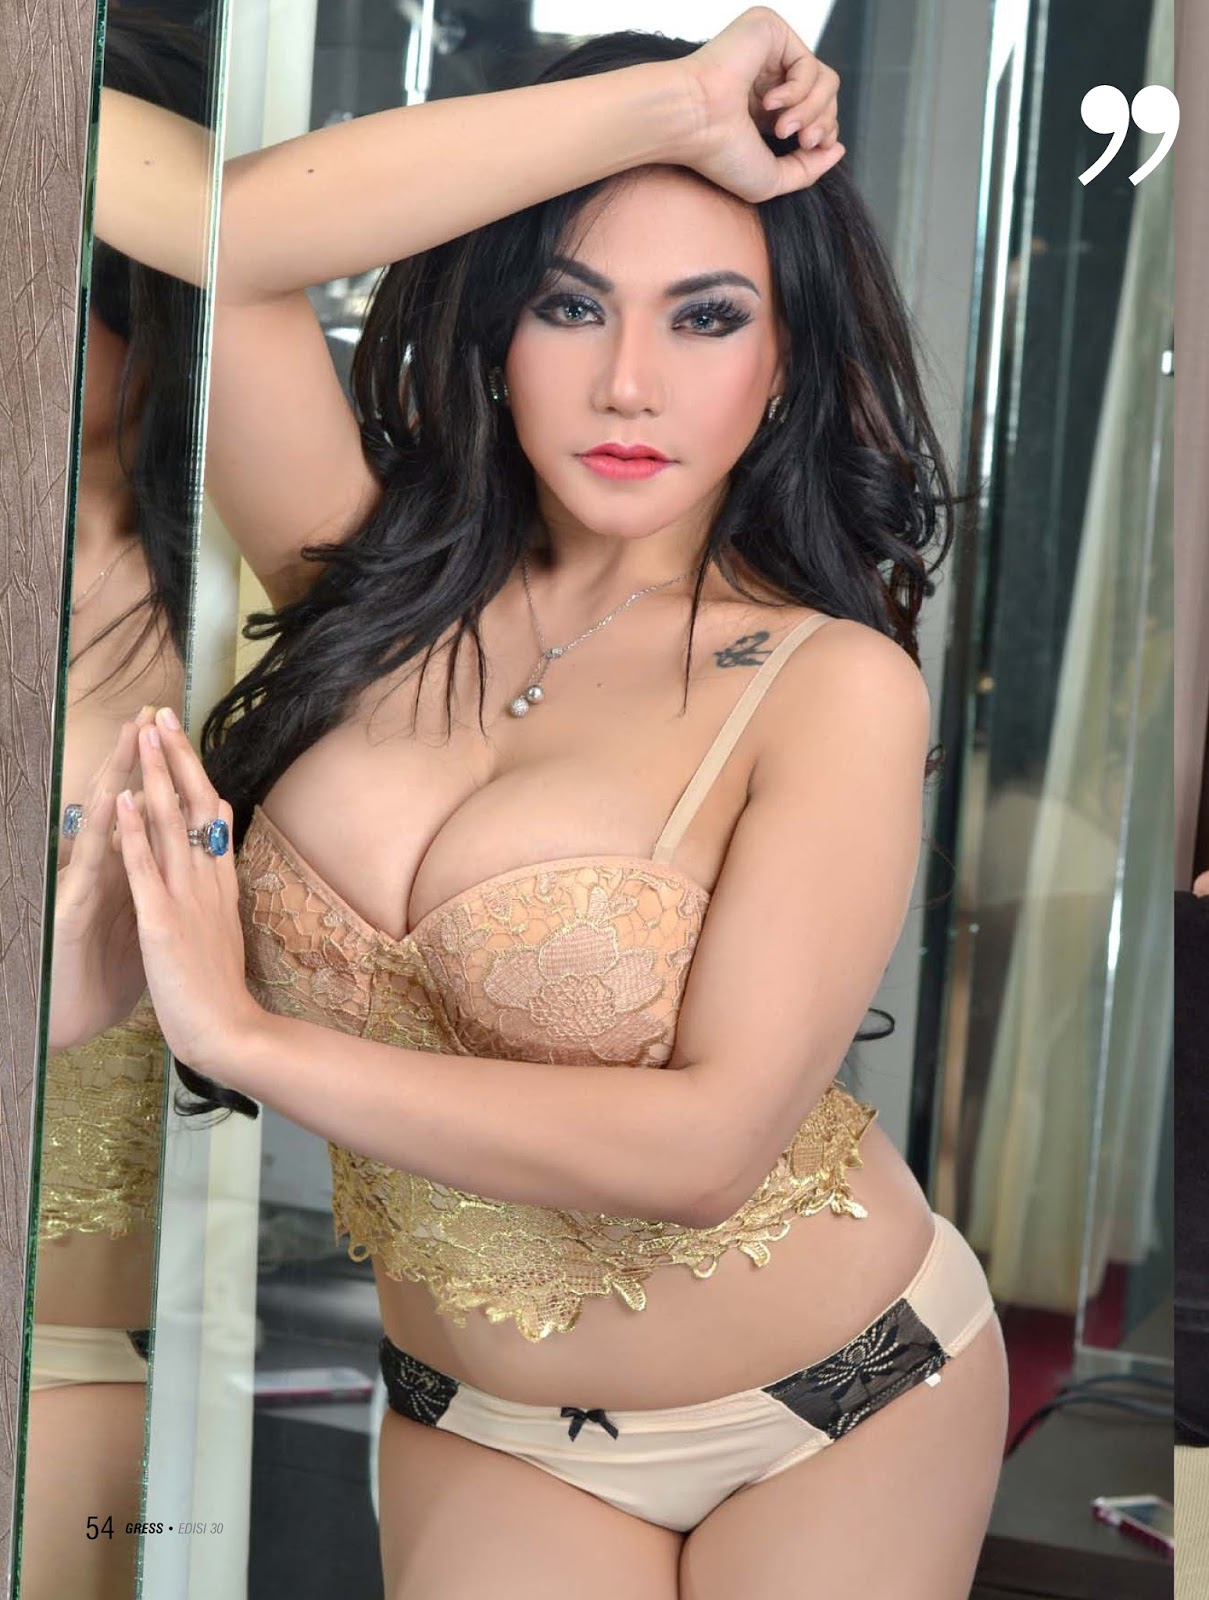 indonesia nude photo gallery